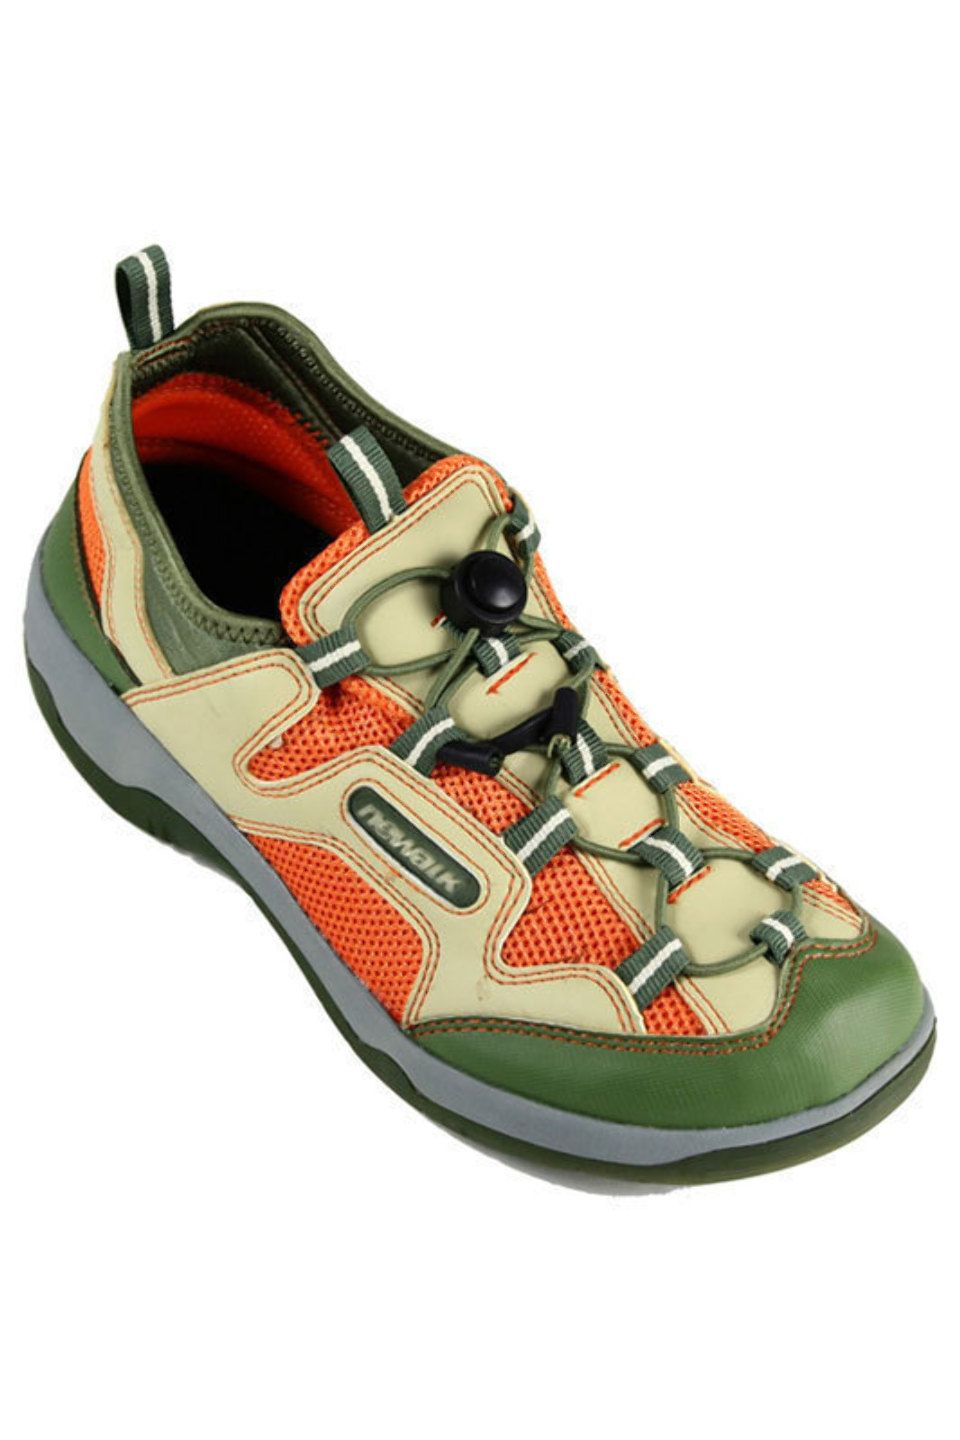 d1a65810bb06f1 Newalk by Birkenstock Men s Zonta Syn Tex Sneaker In Harvest   Pumpkin -  Beyond the Rack More my style. haha